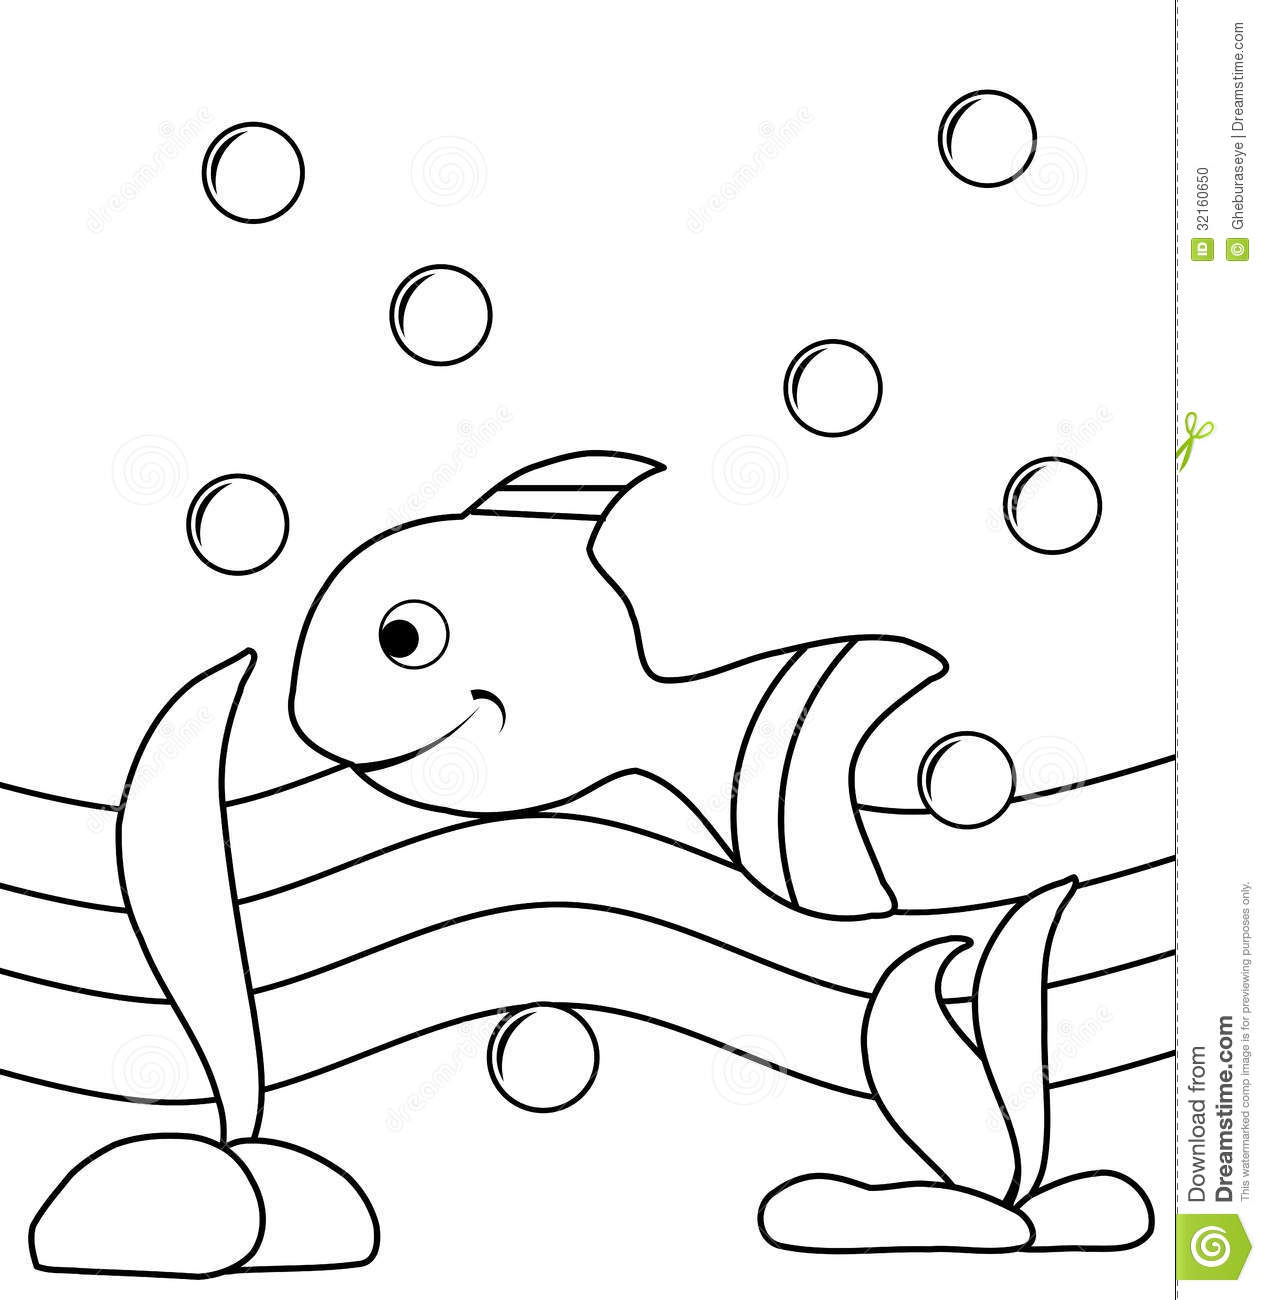 Colorable Fish Stock Photo Image 32160650